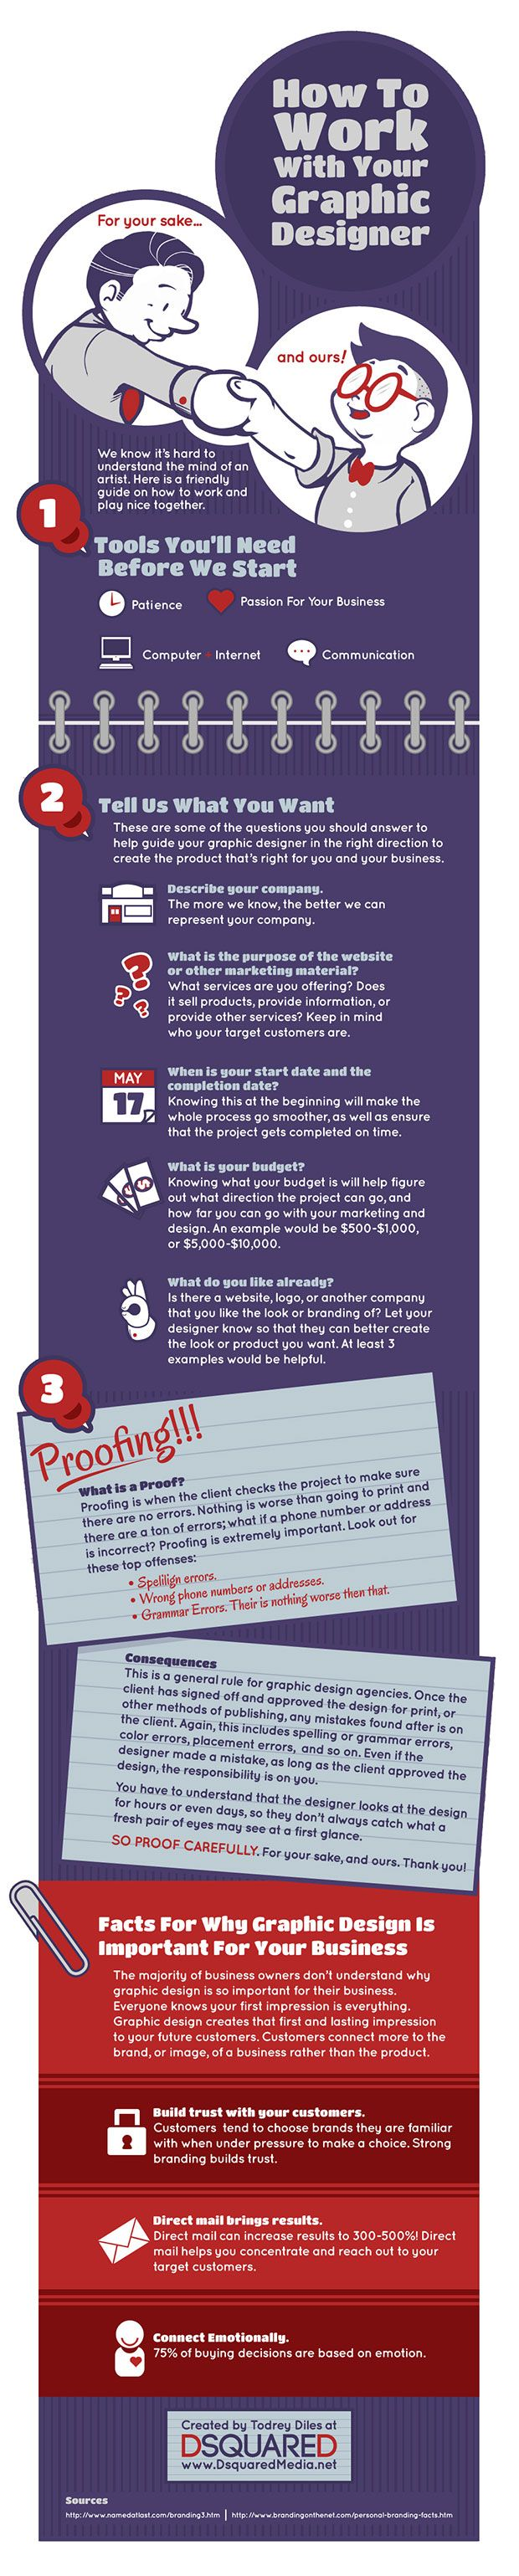 How to work with your graphic designer - something great to distribute to clients!